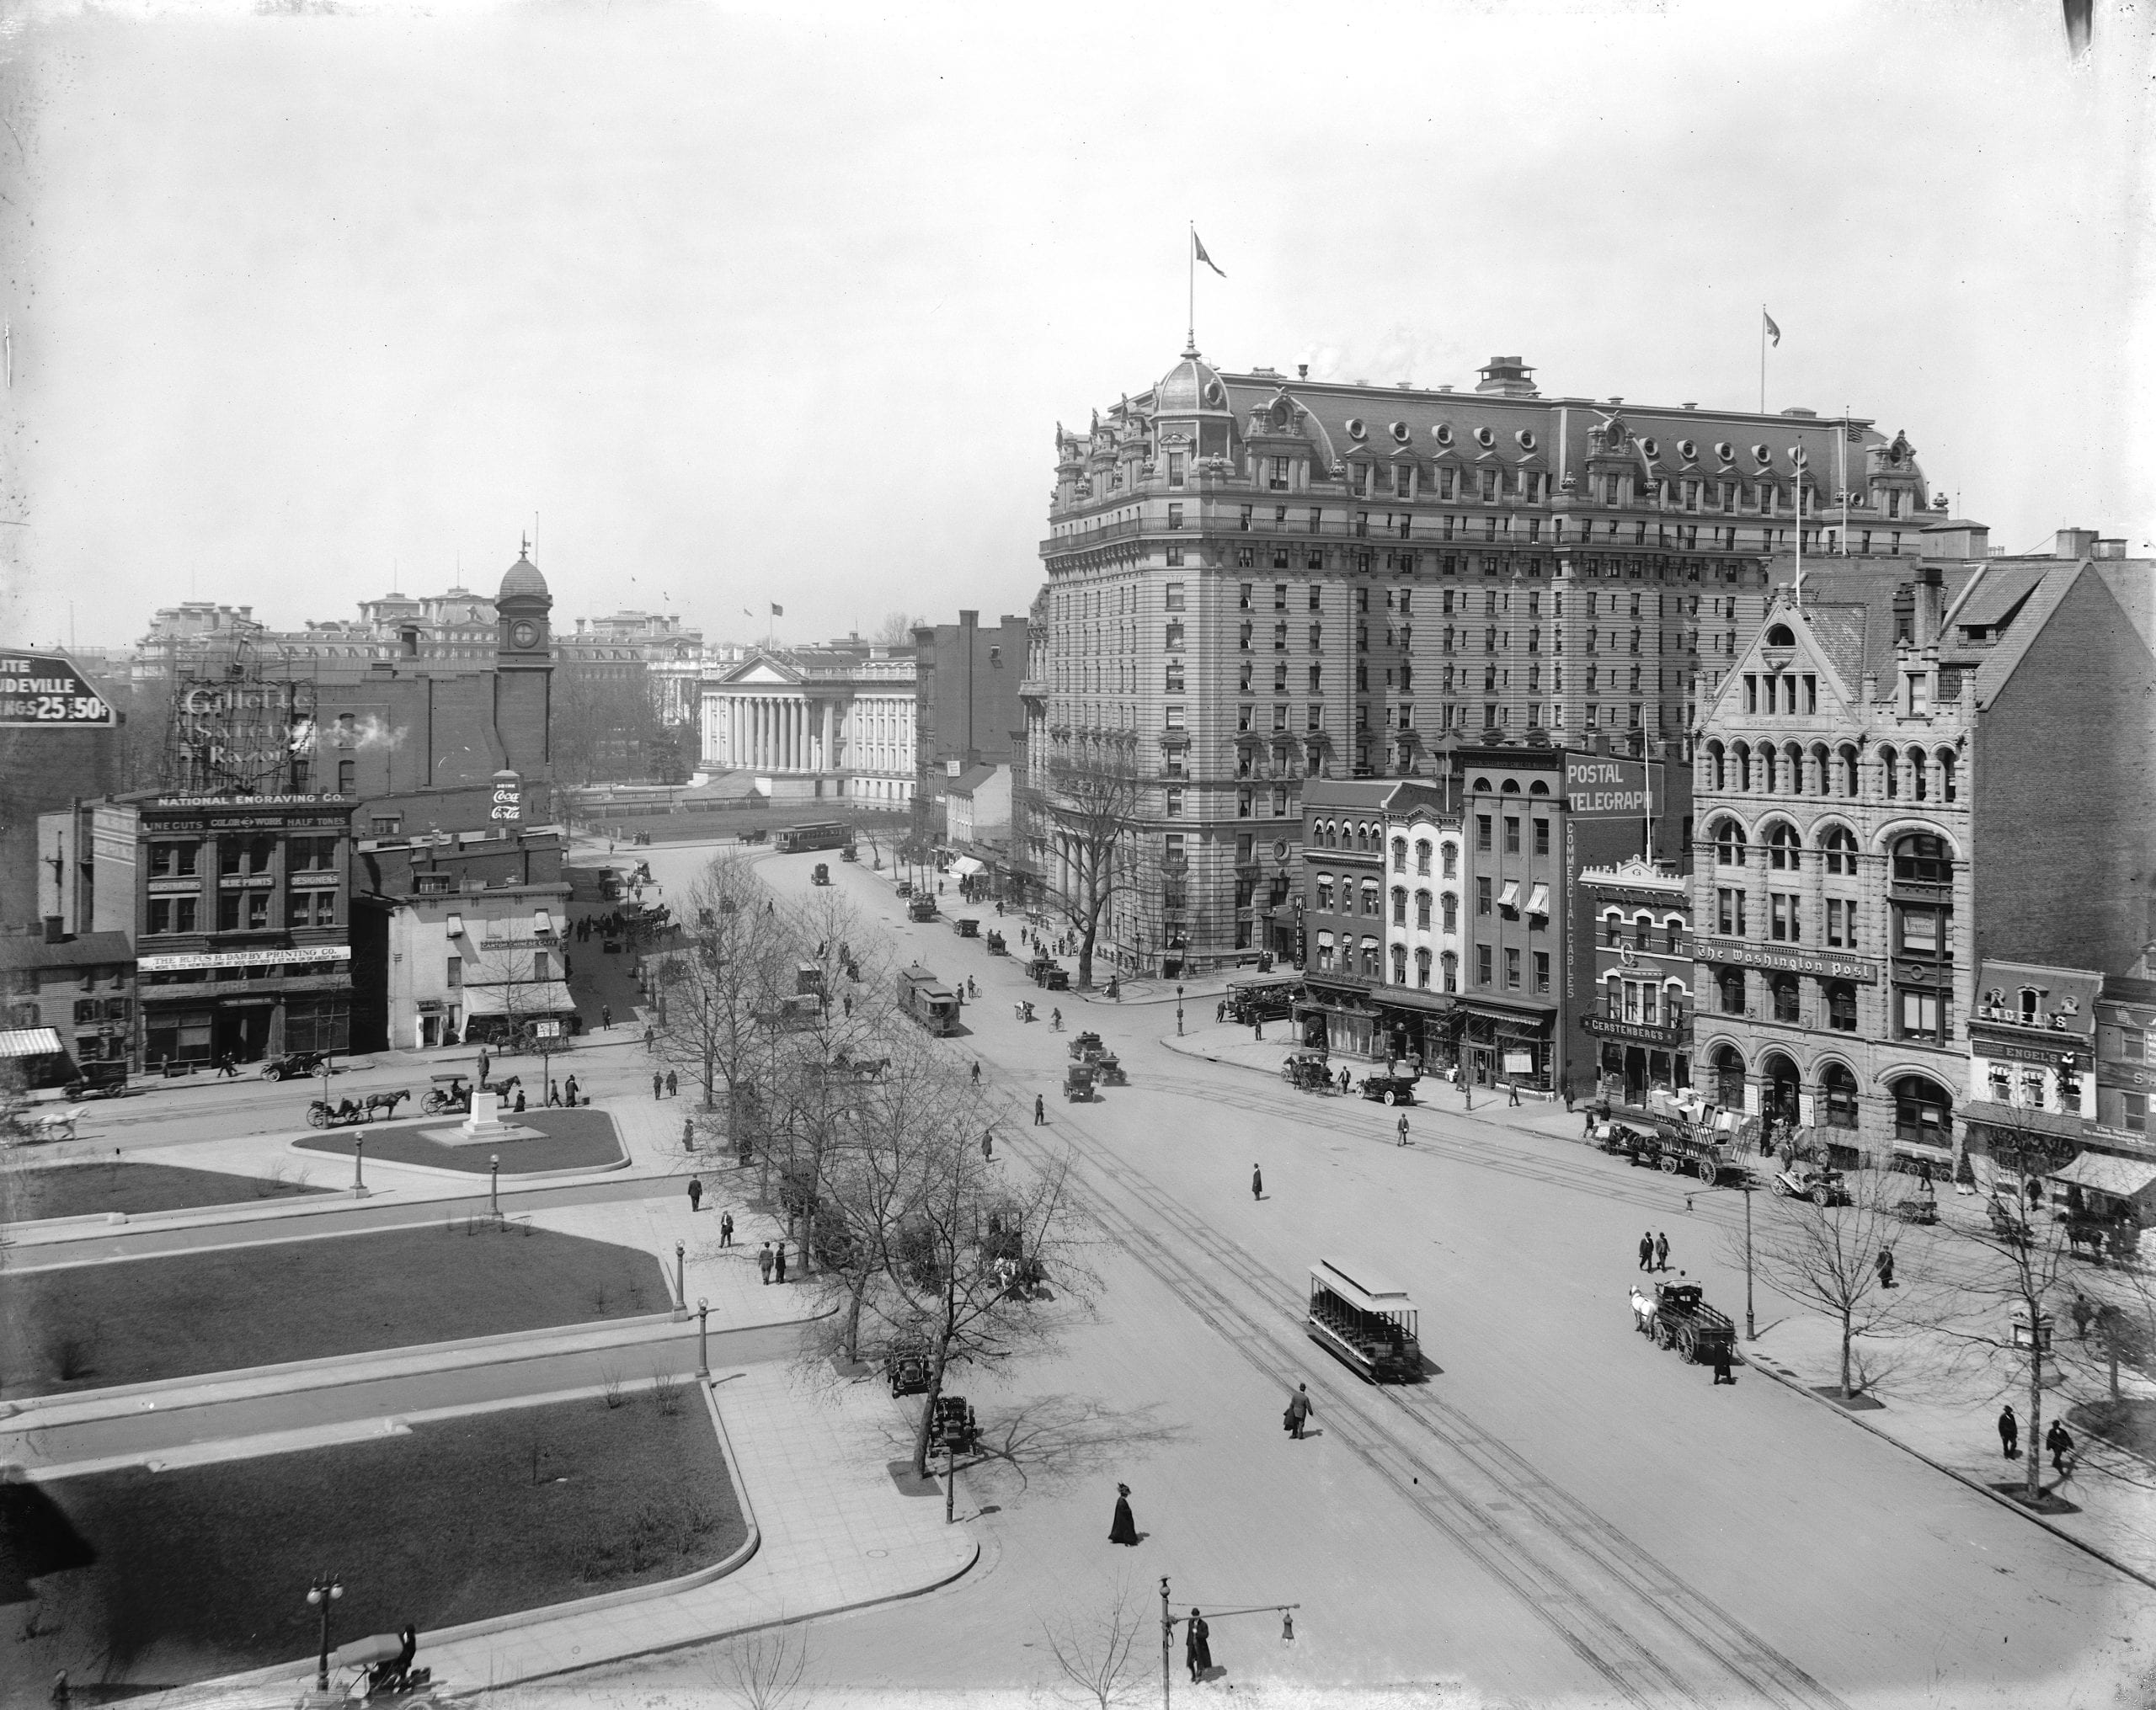 early 1900s view of 11th and Pennsylvania